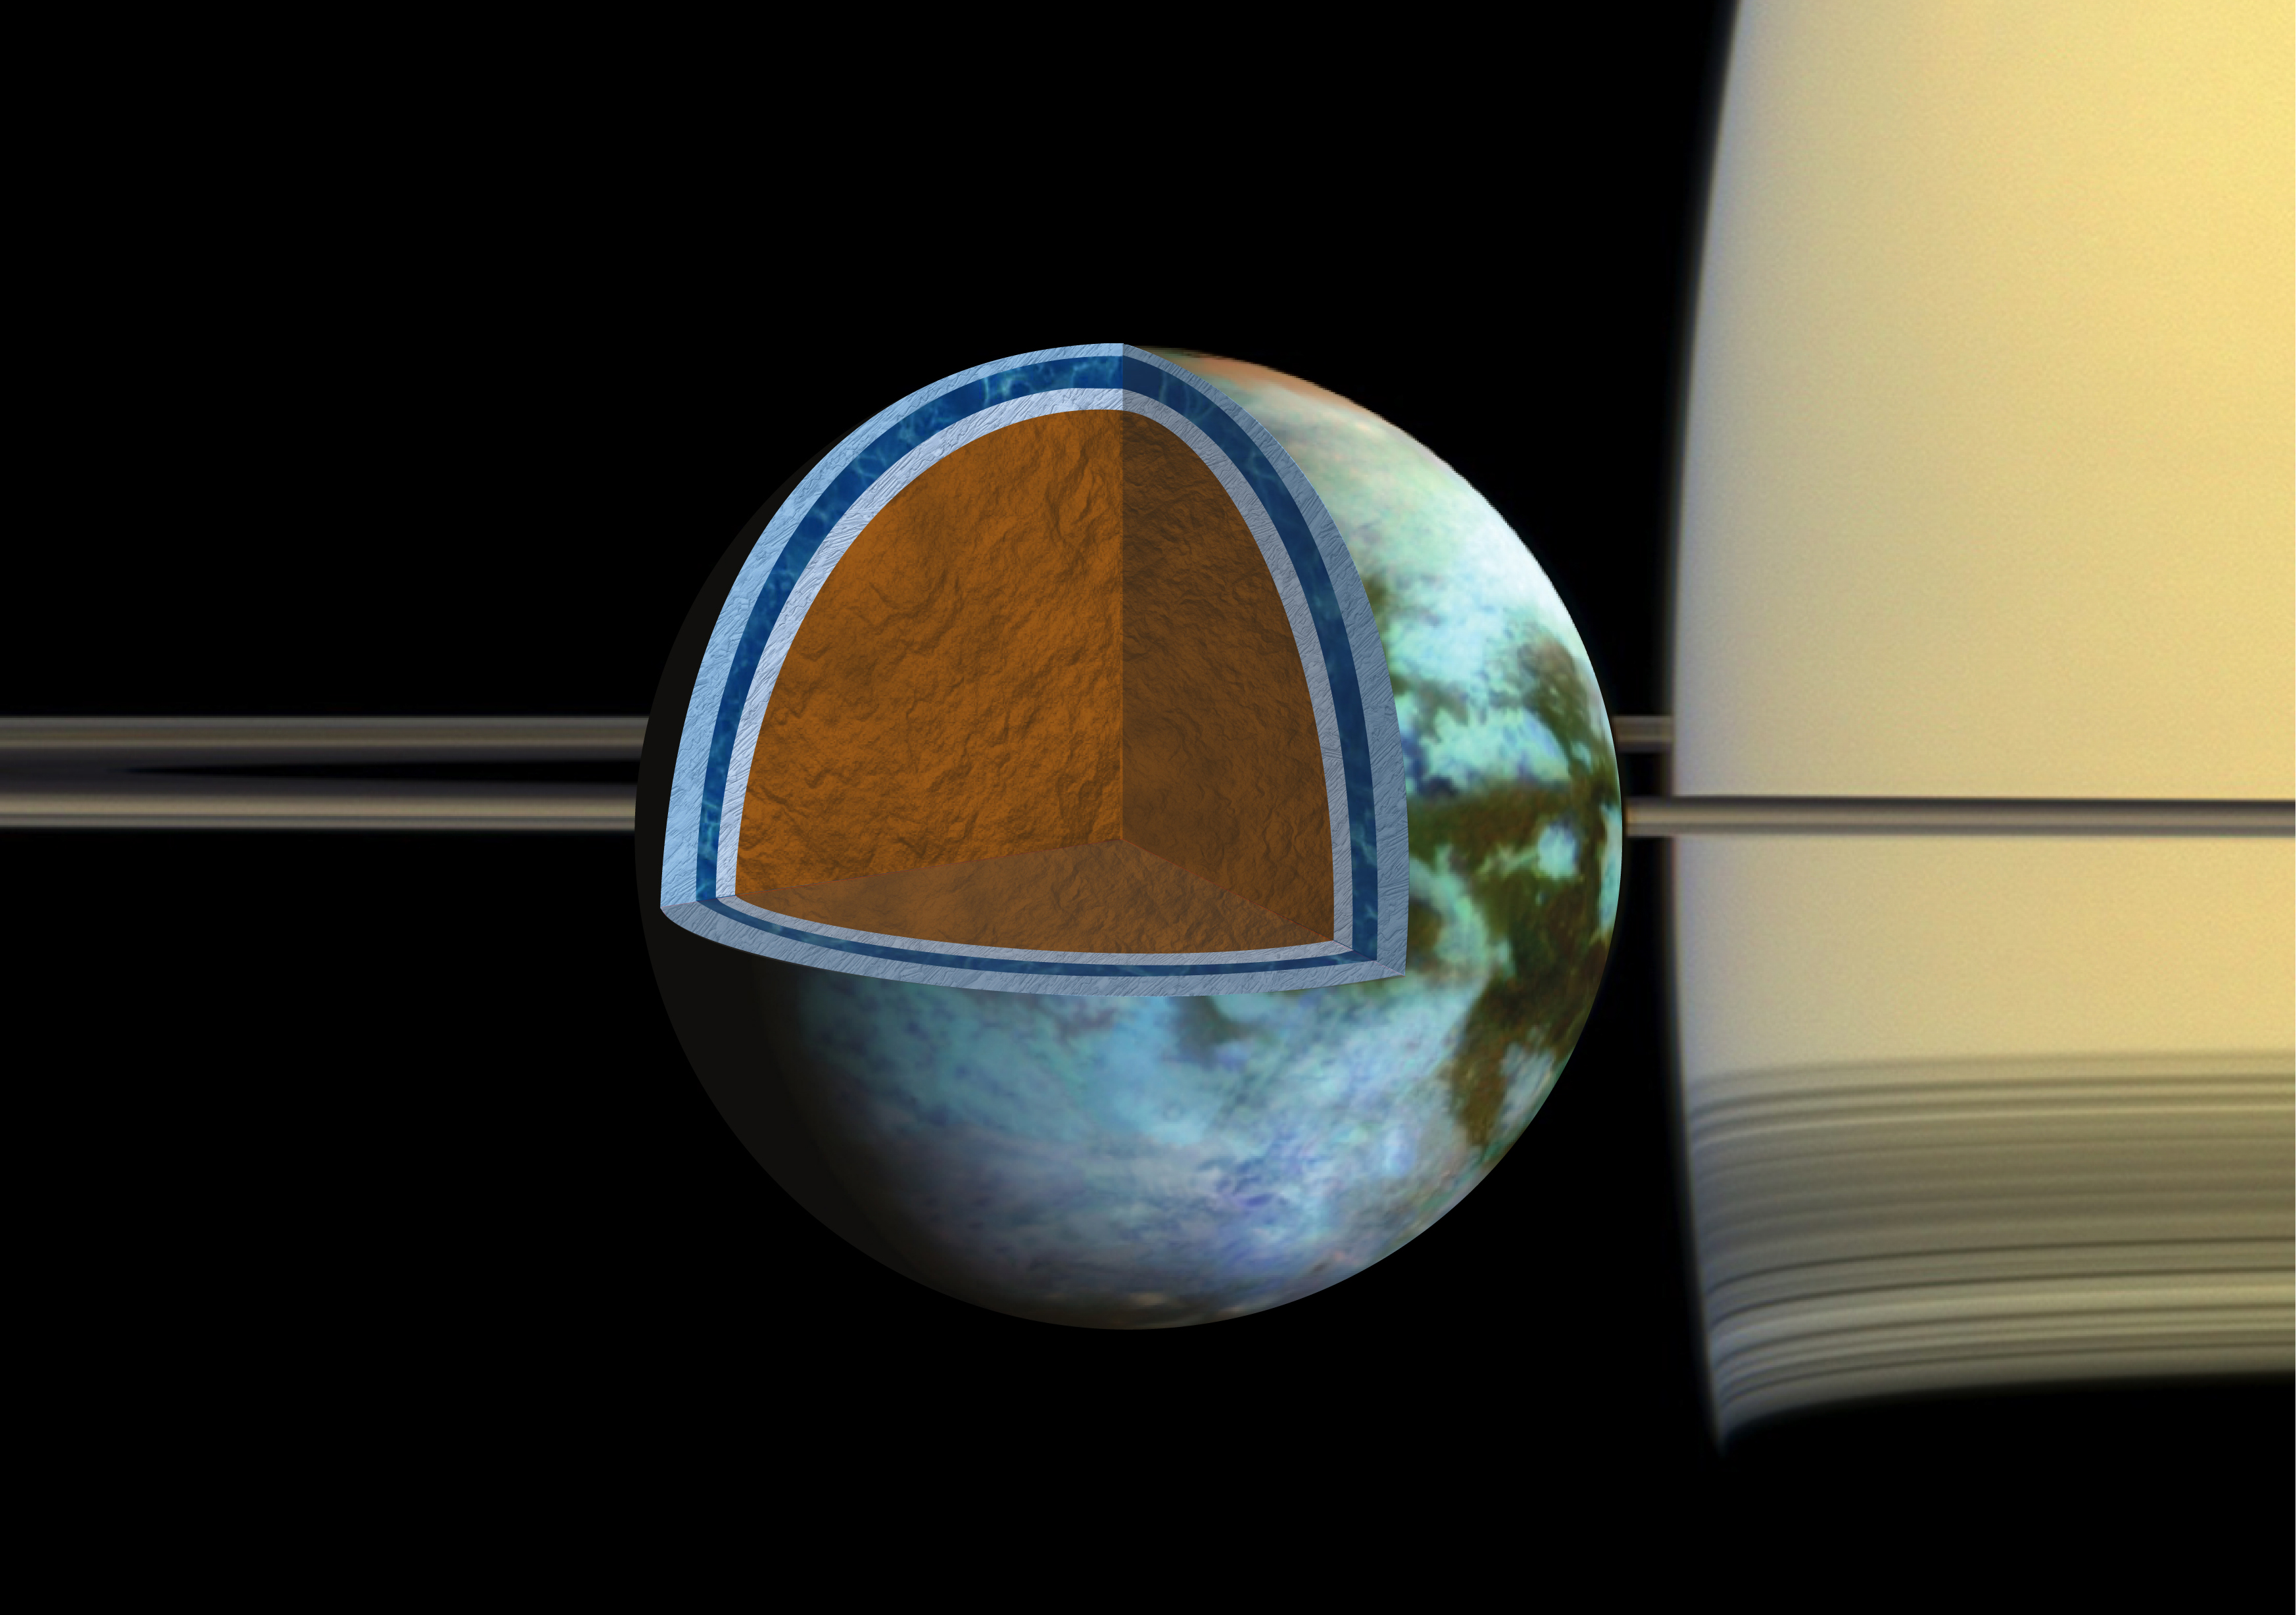 Ocean on Saturn Moon Could be as Salty as the Dead Sea, study reveals